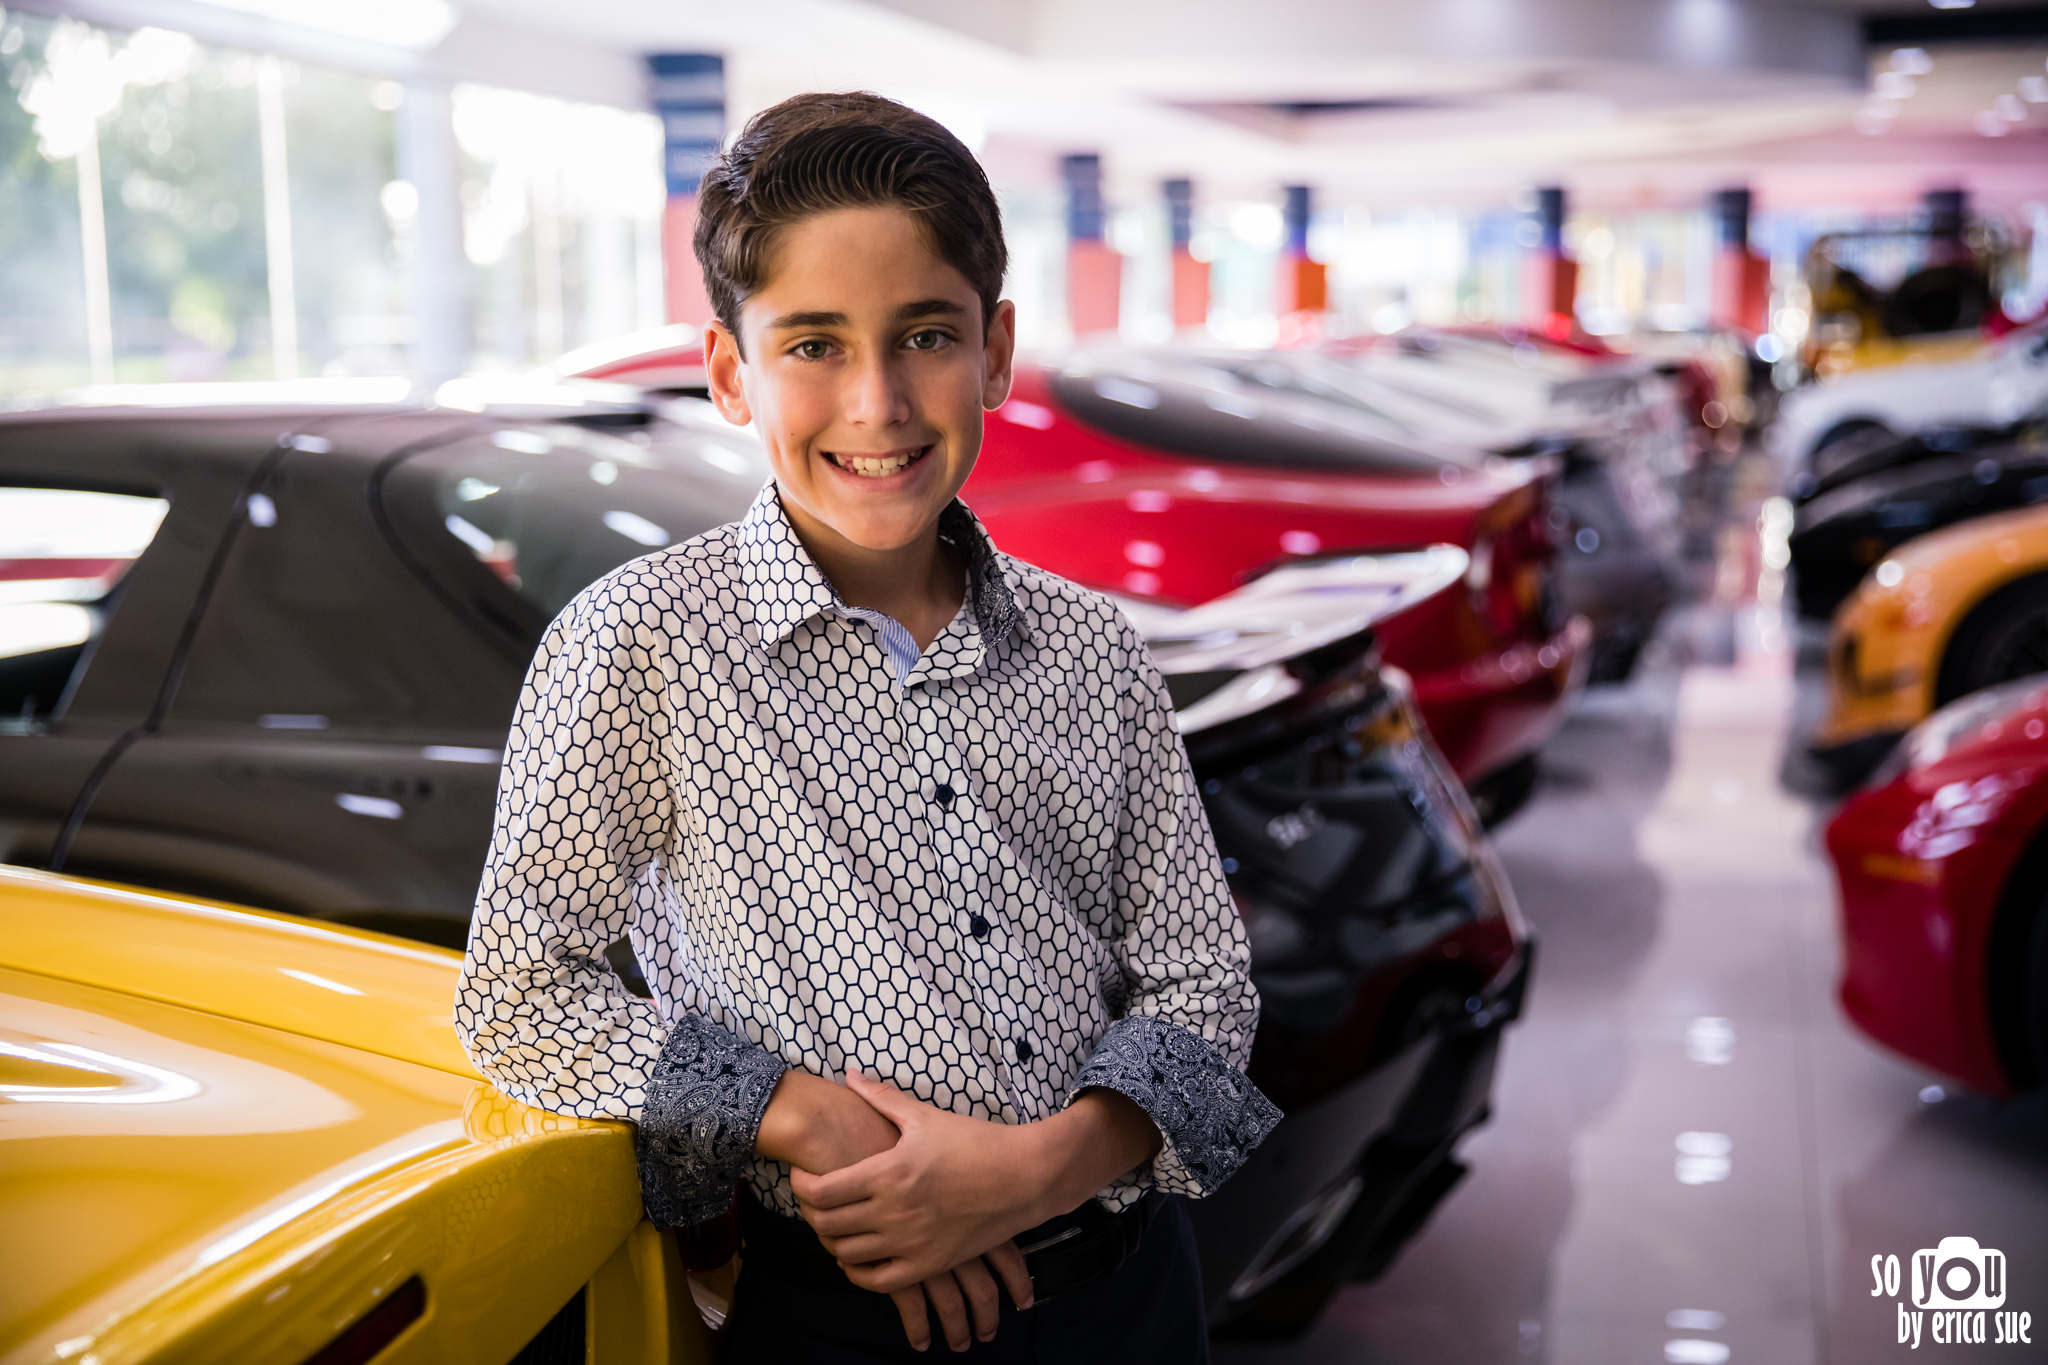 so-you-by-erica-sue-mitzvah-photographer-collection-luxury-car-ft-lauderdale-5012.jpg